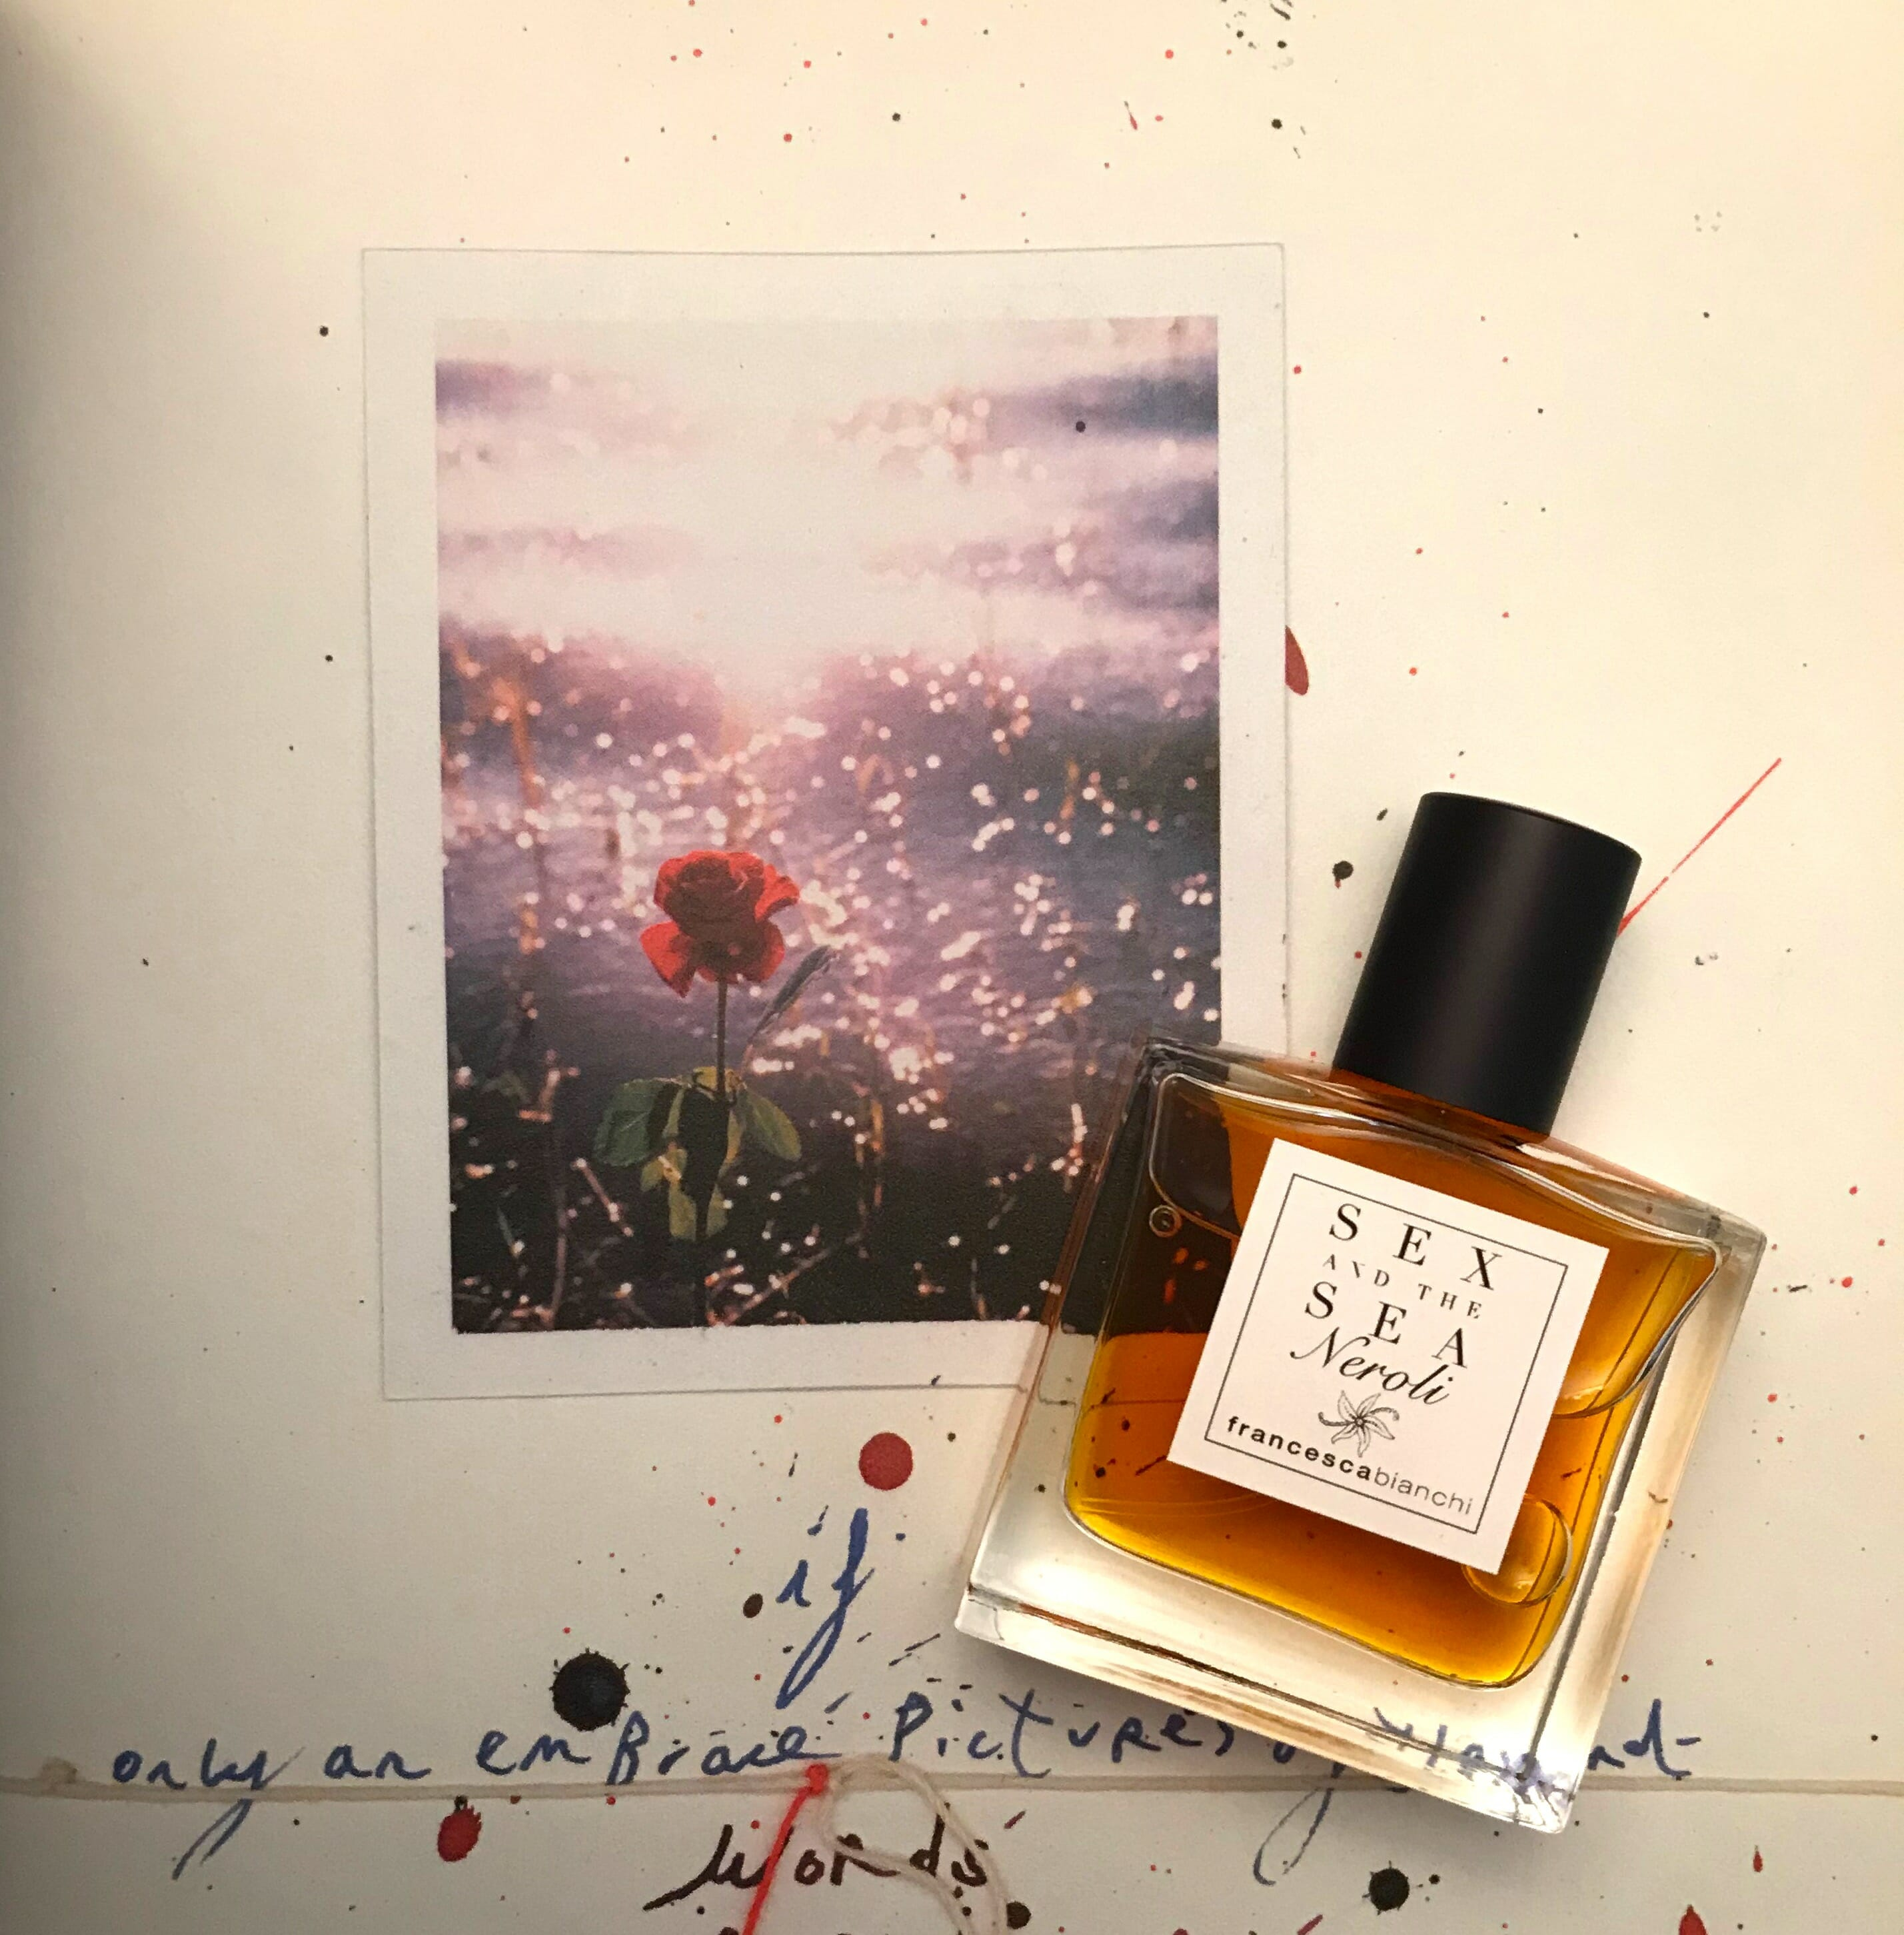 SEX AND THE SEA NEROLI 10 | Francesca Bianchi Perfumes